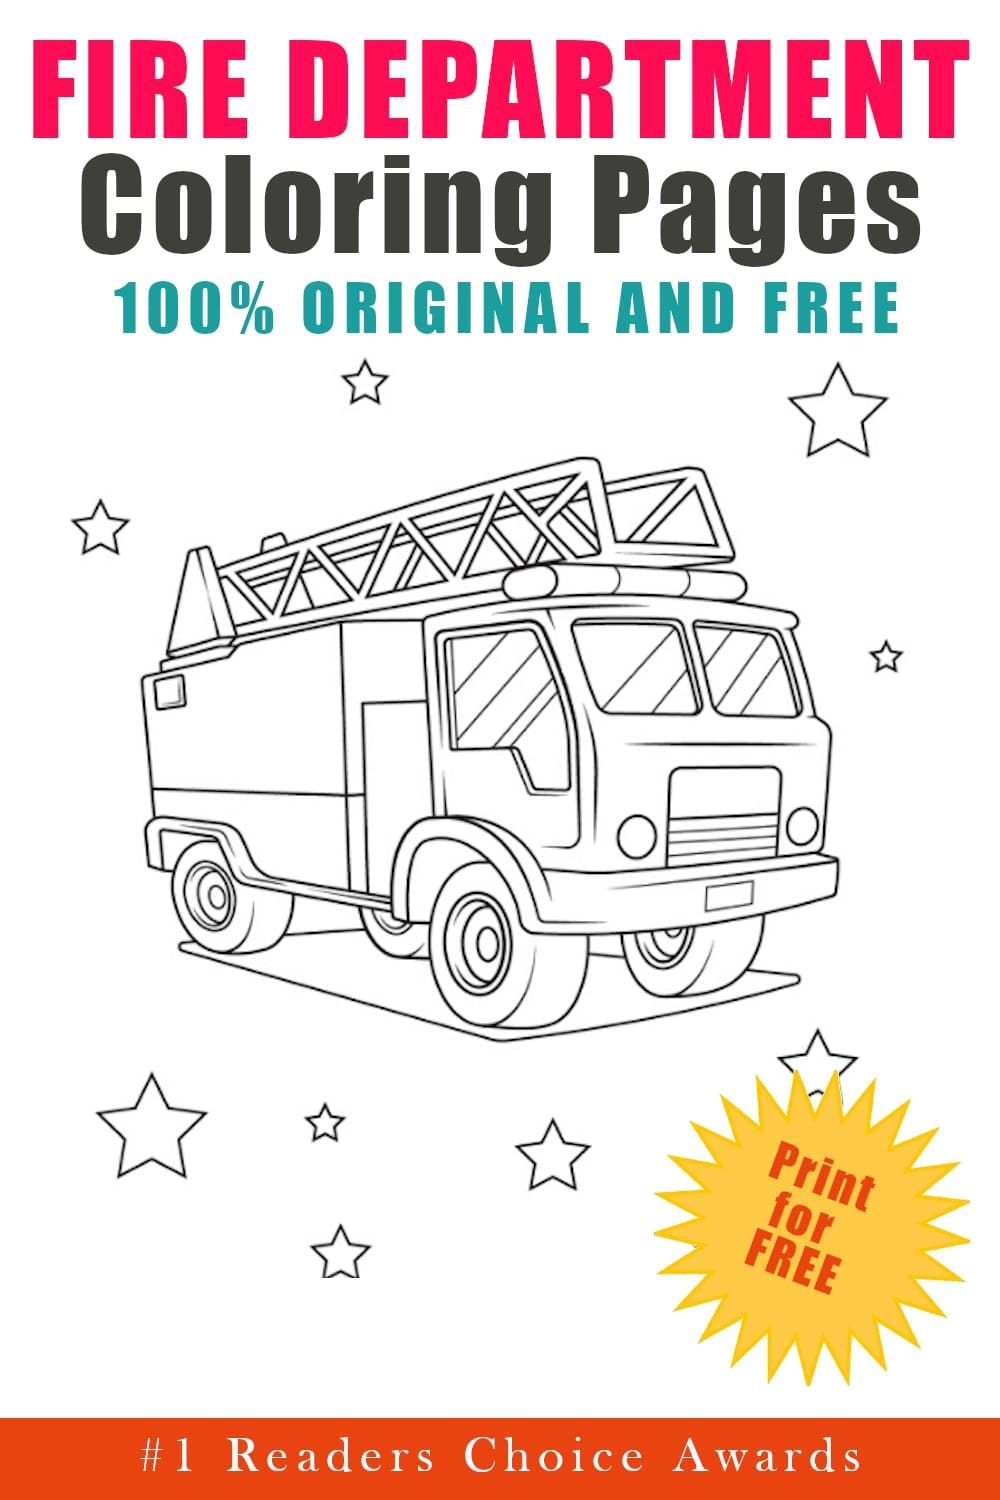 original and free fire department coloring pages